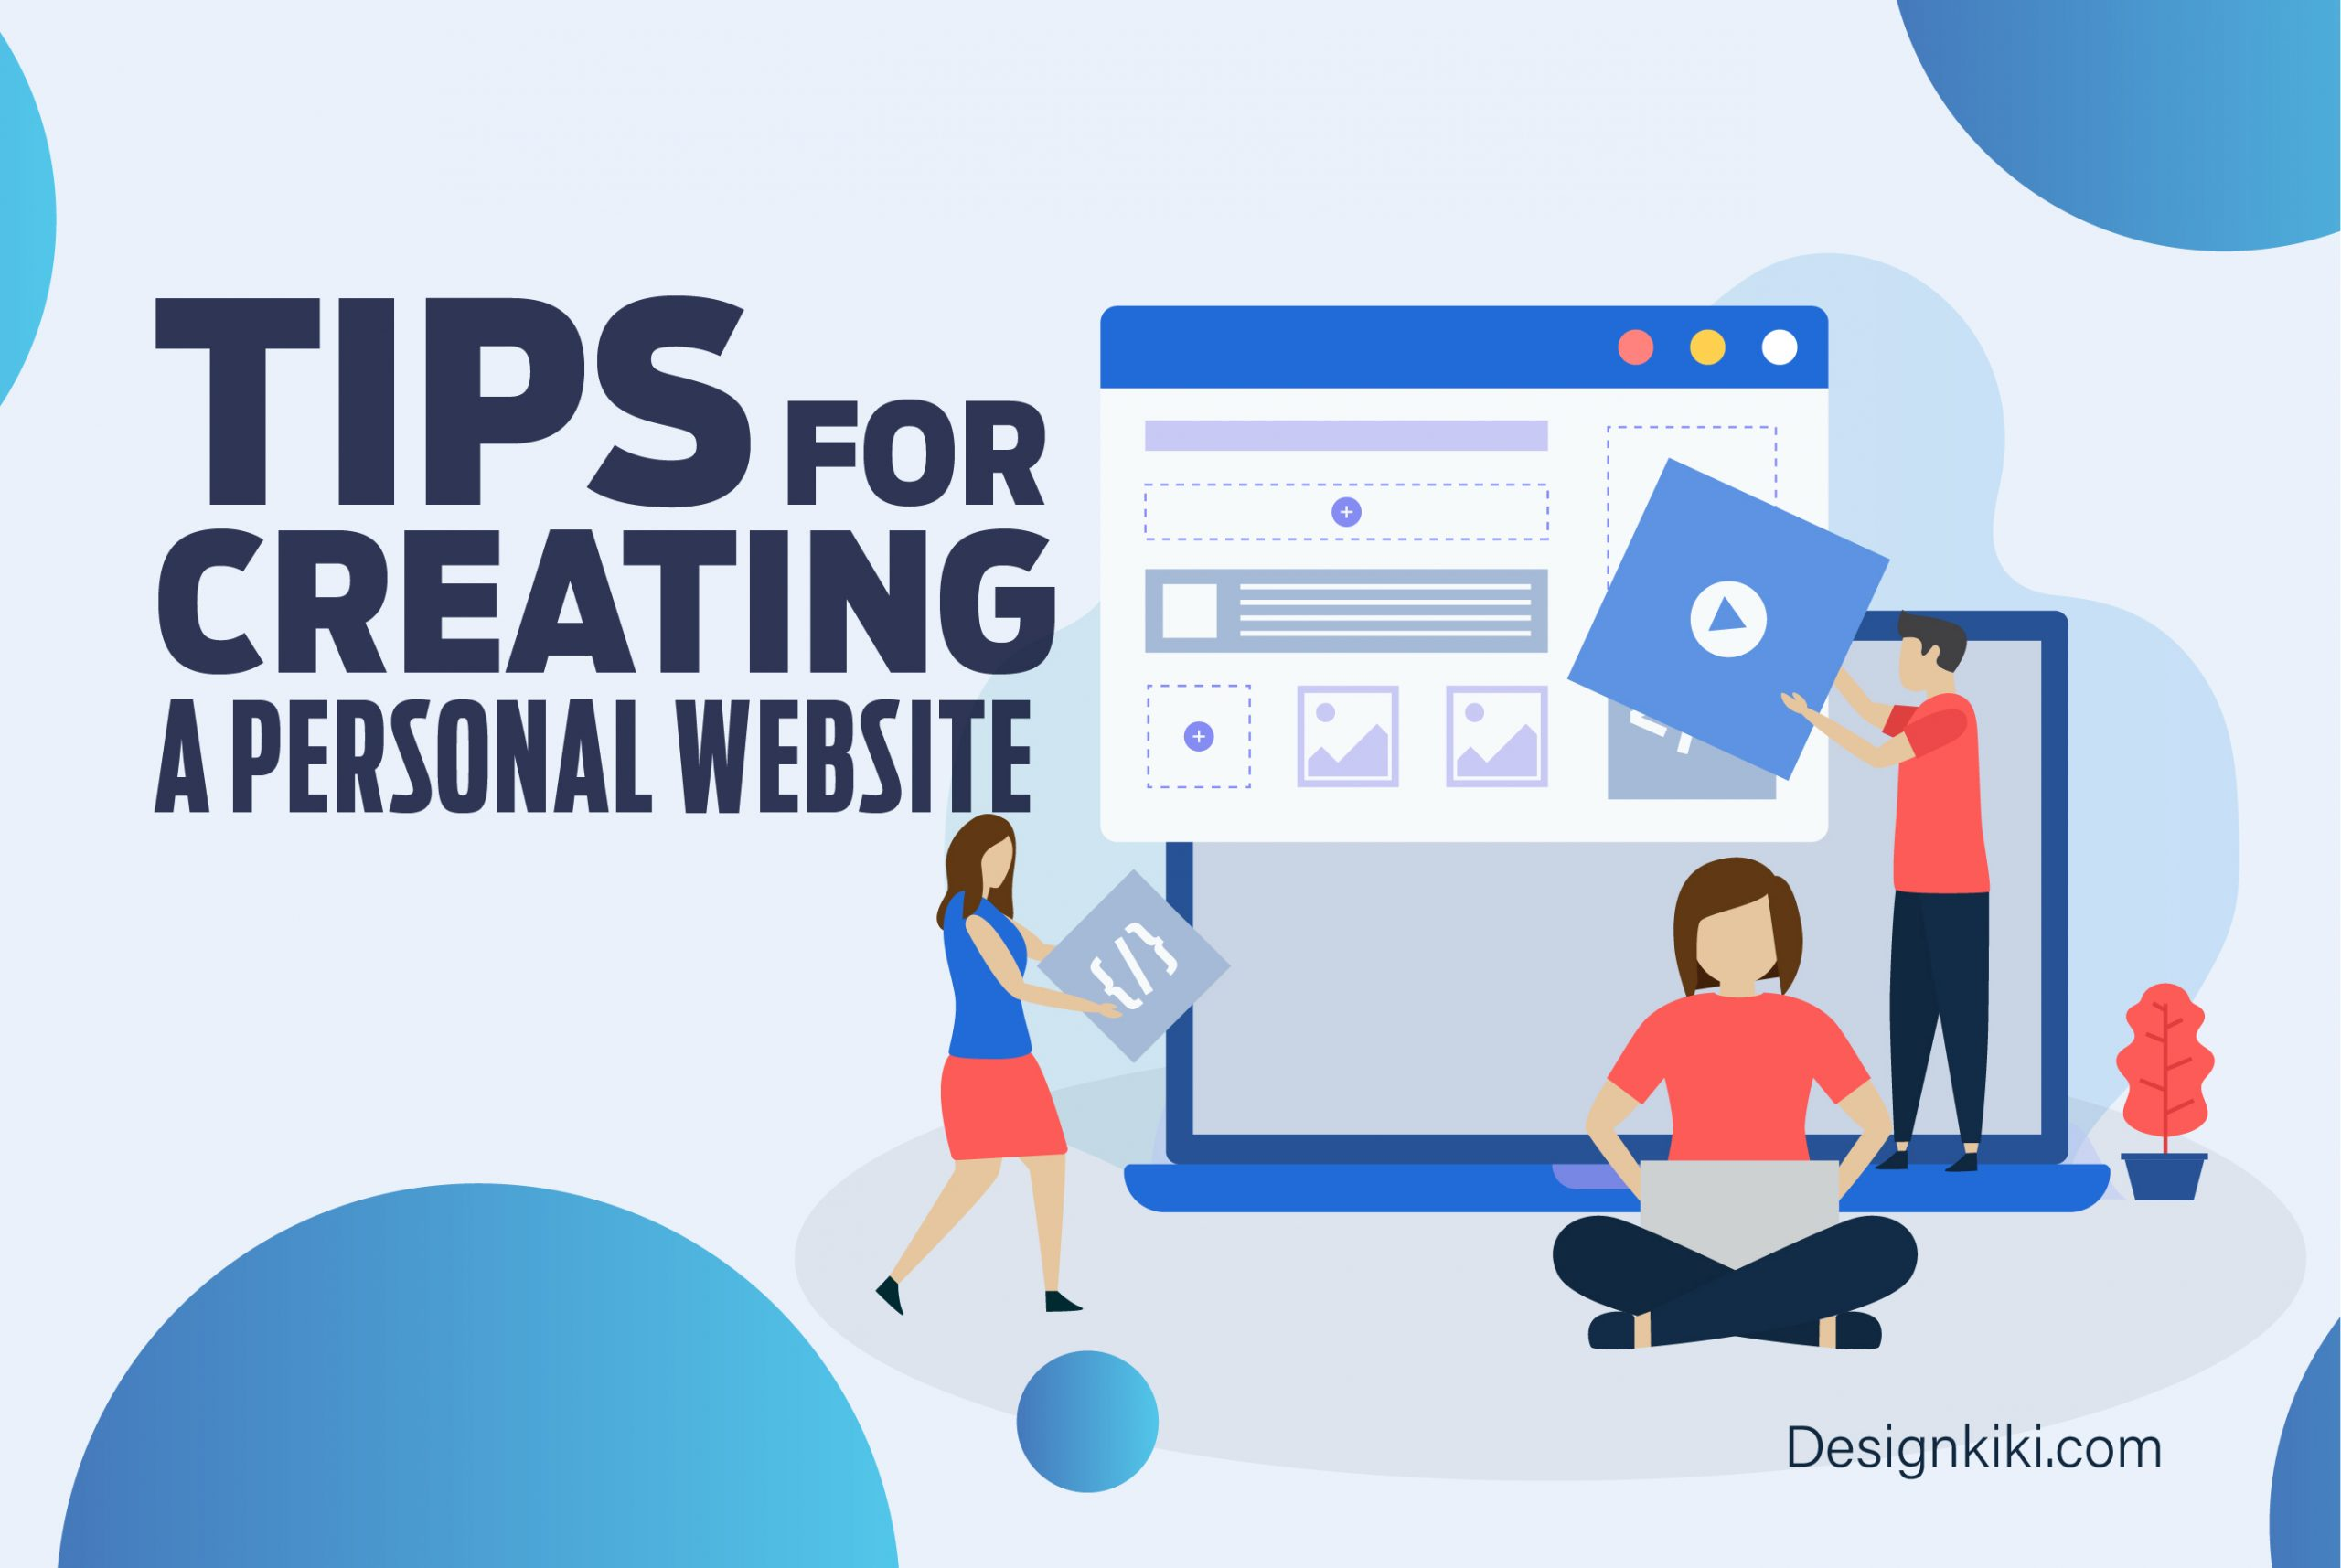 Tips for creating a personal website